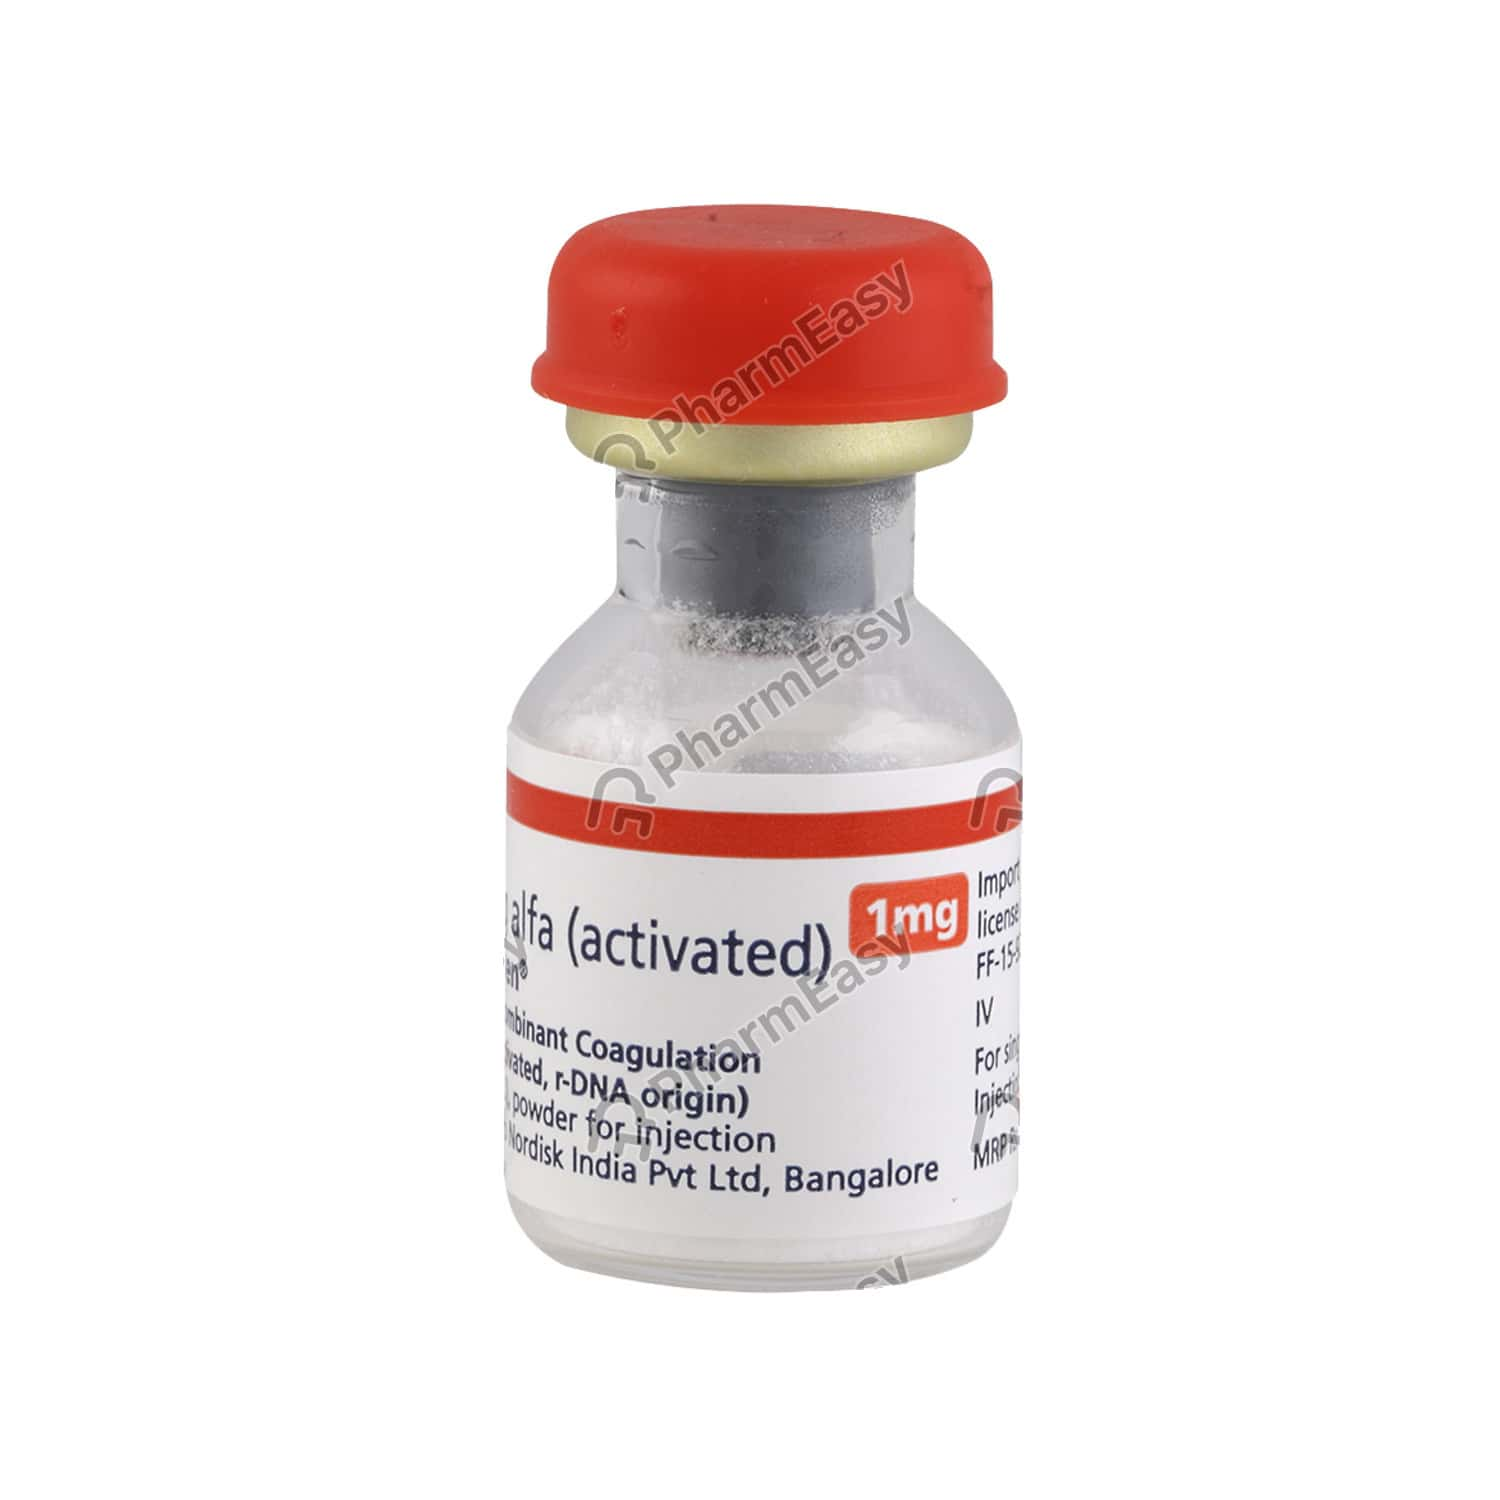 Novoseven 1mg Vial Of 1 Injection